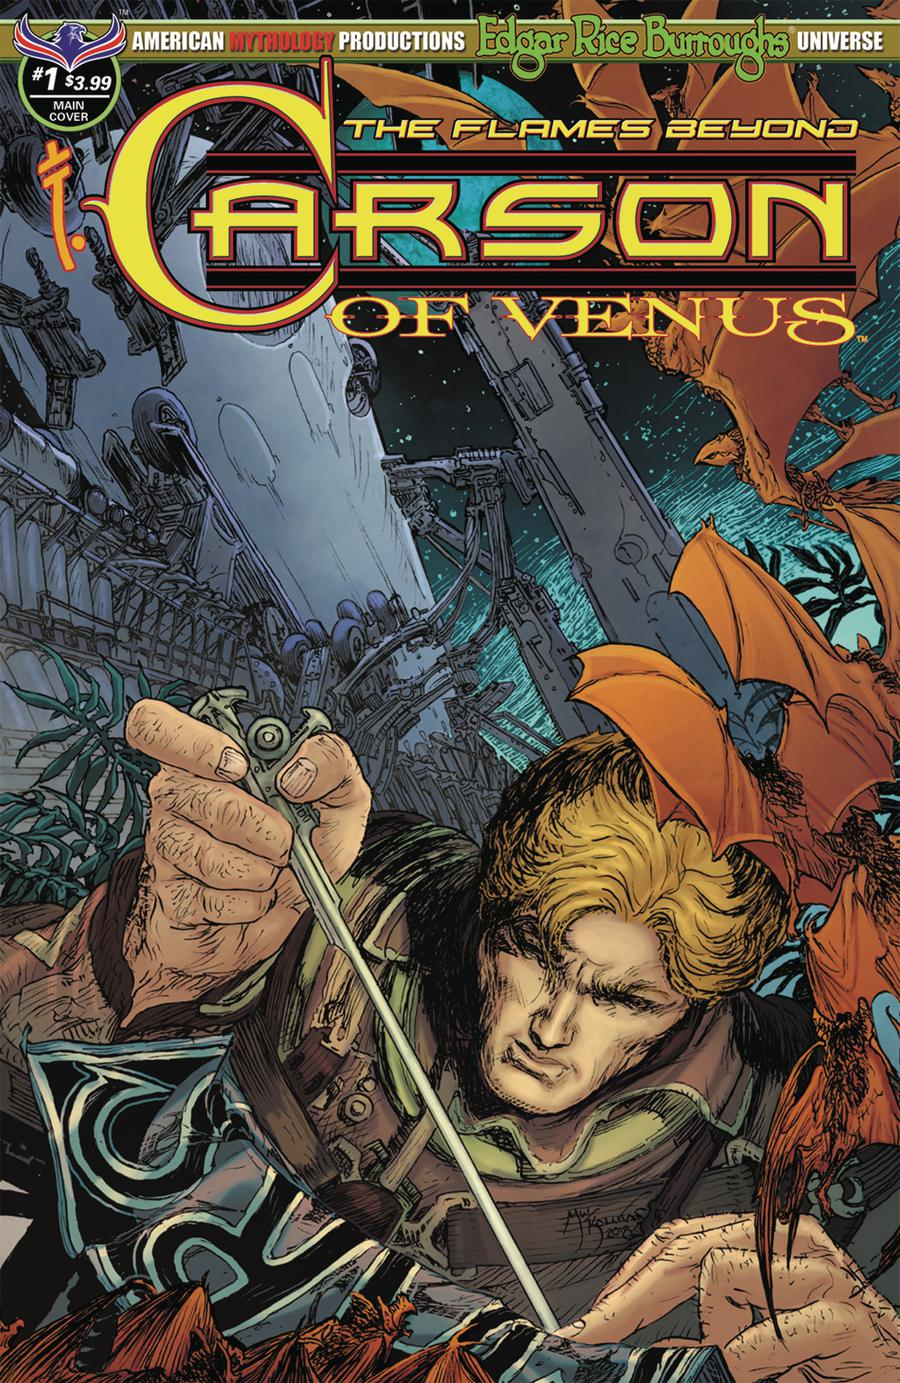 Carson Of Venus Flames Beyond #1 Cover A Regular Michael William Kaluta Cover